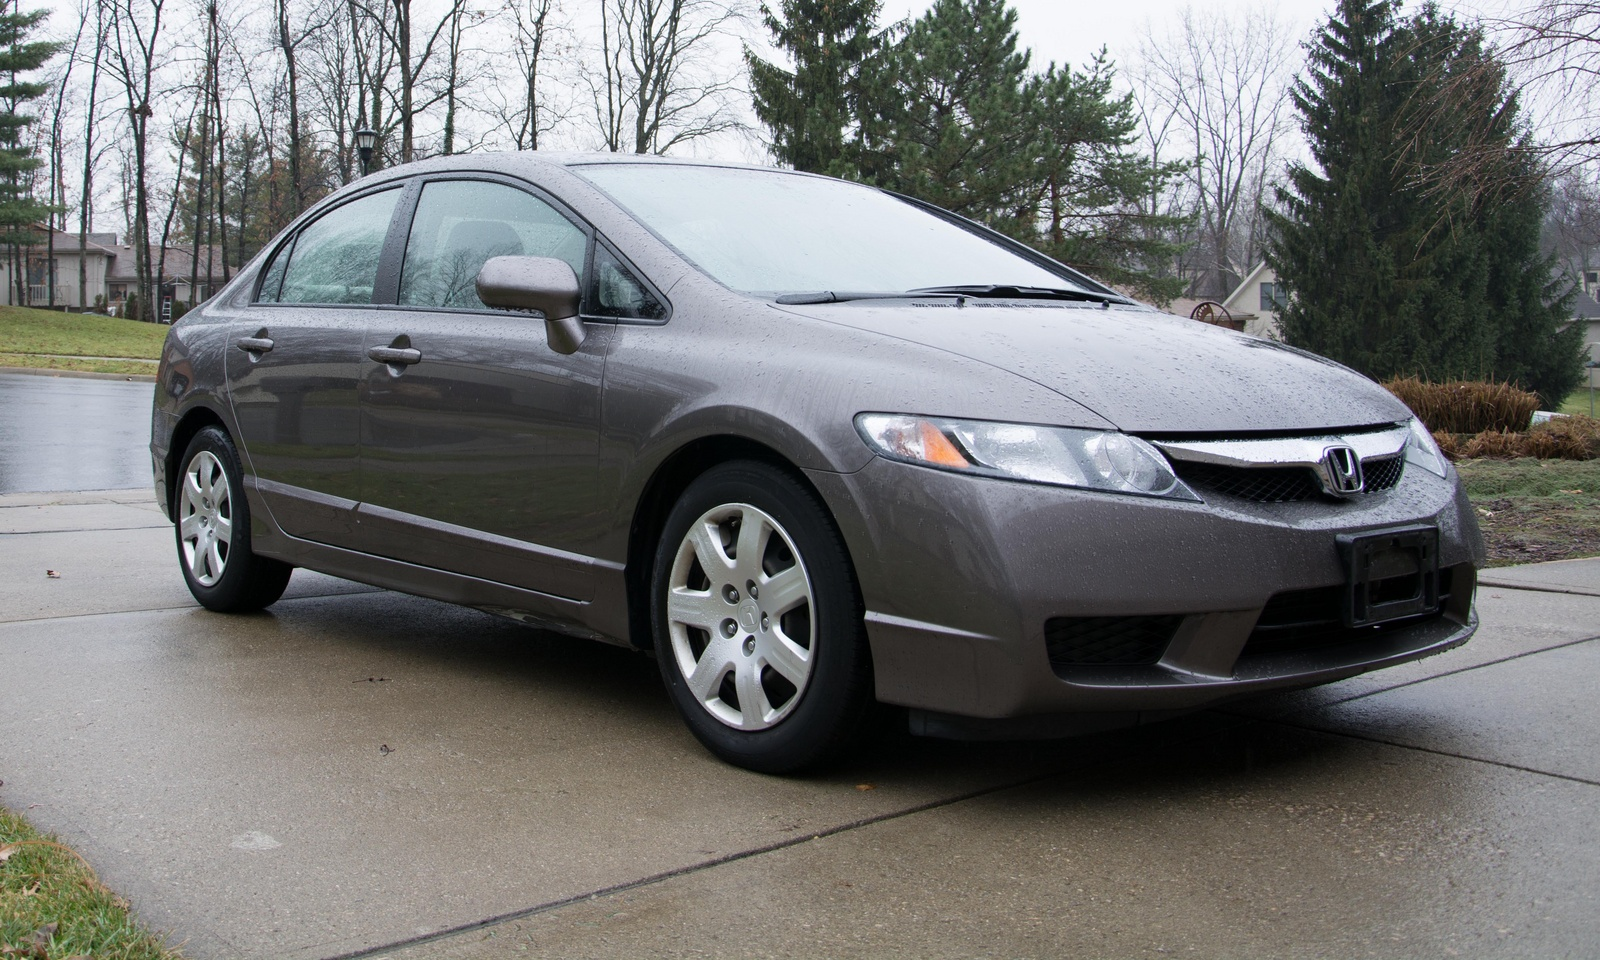 Used Honda Civic Si >> 2011 Honda Civic - Pictures - CarGurus